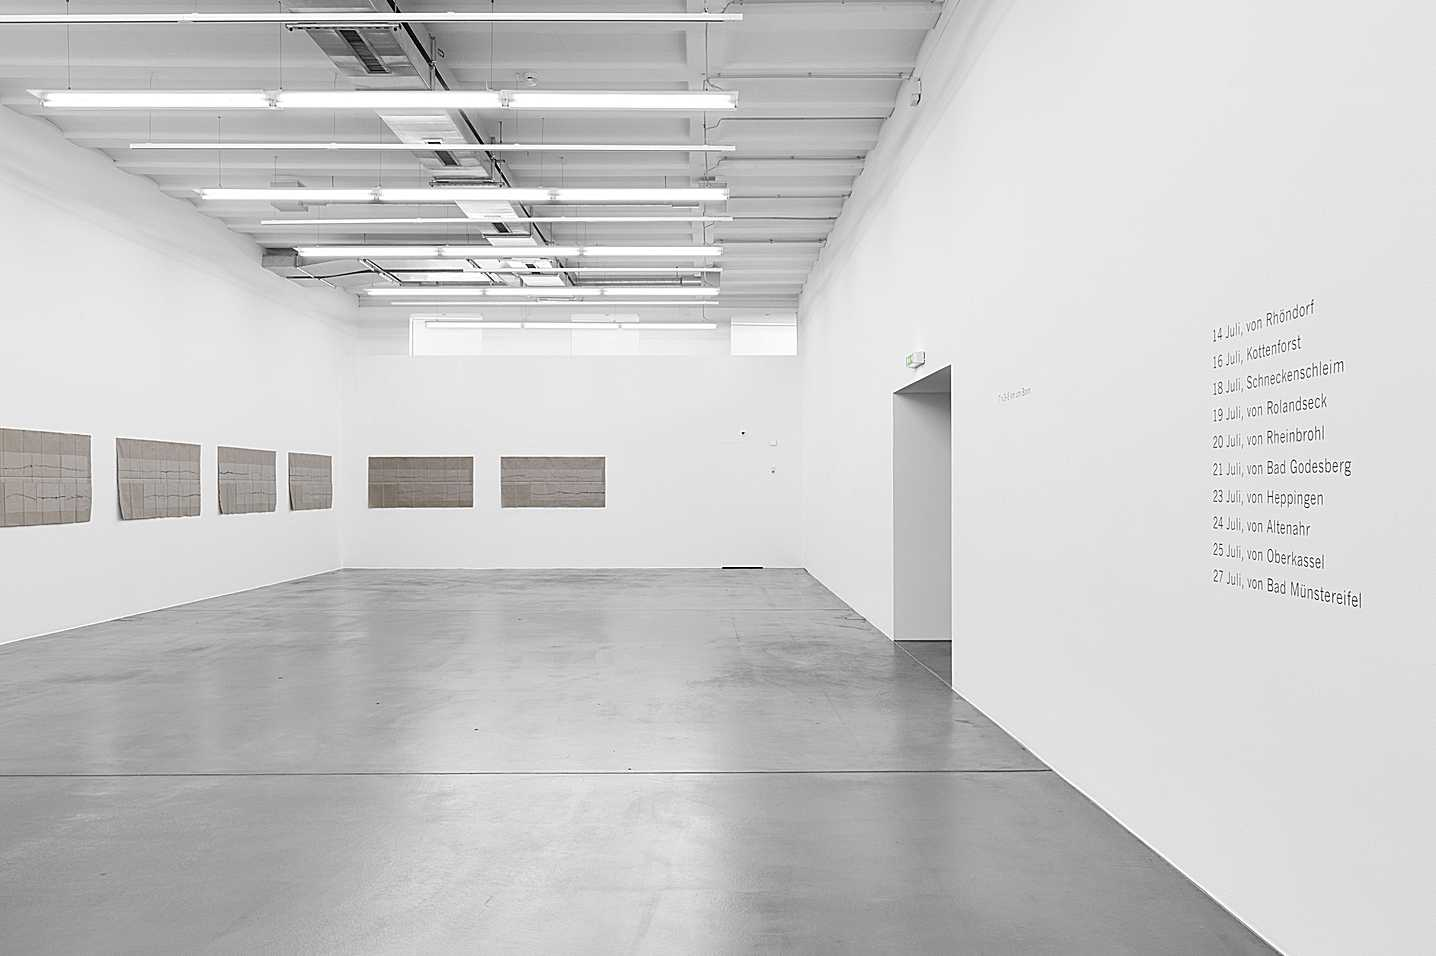 Helen Mirra – gehend, Exhibition view Museum Haus Konstruktiv, 2012, Photo: Stefan Altenburger